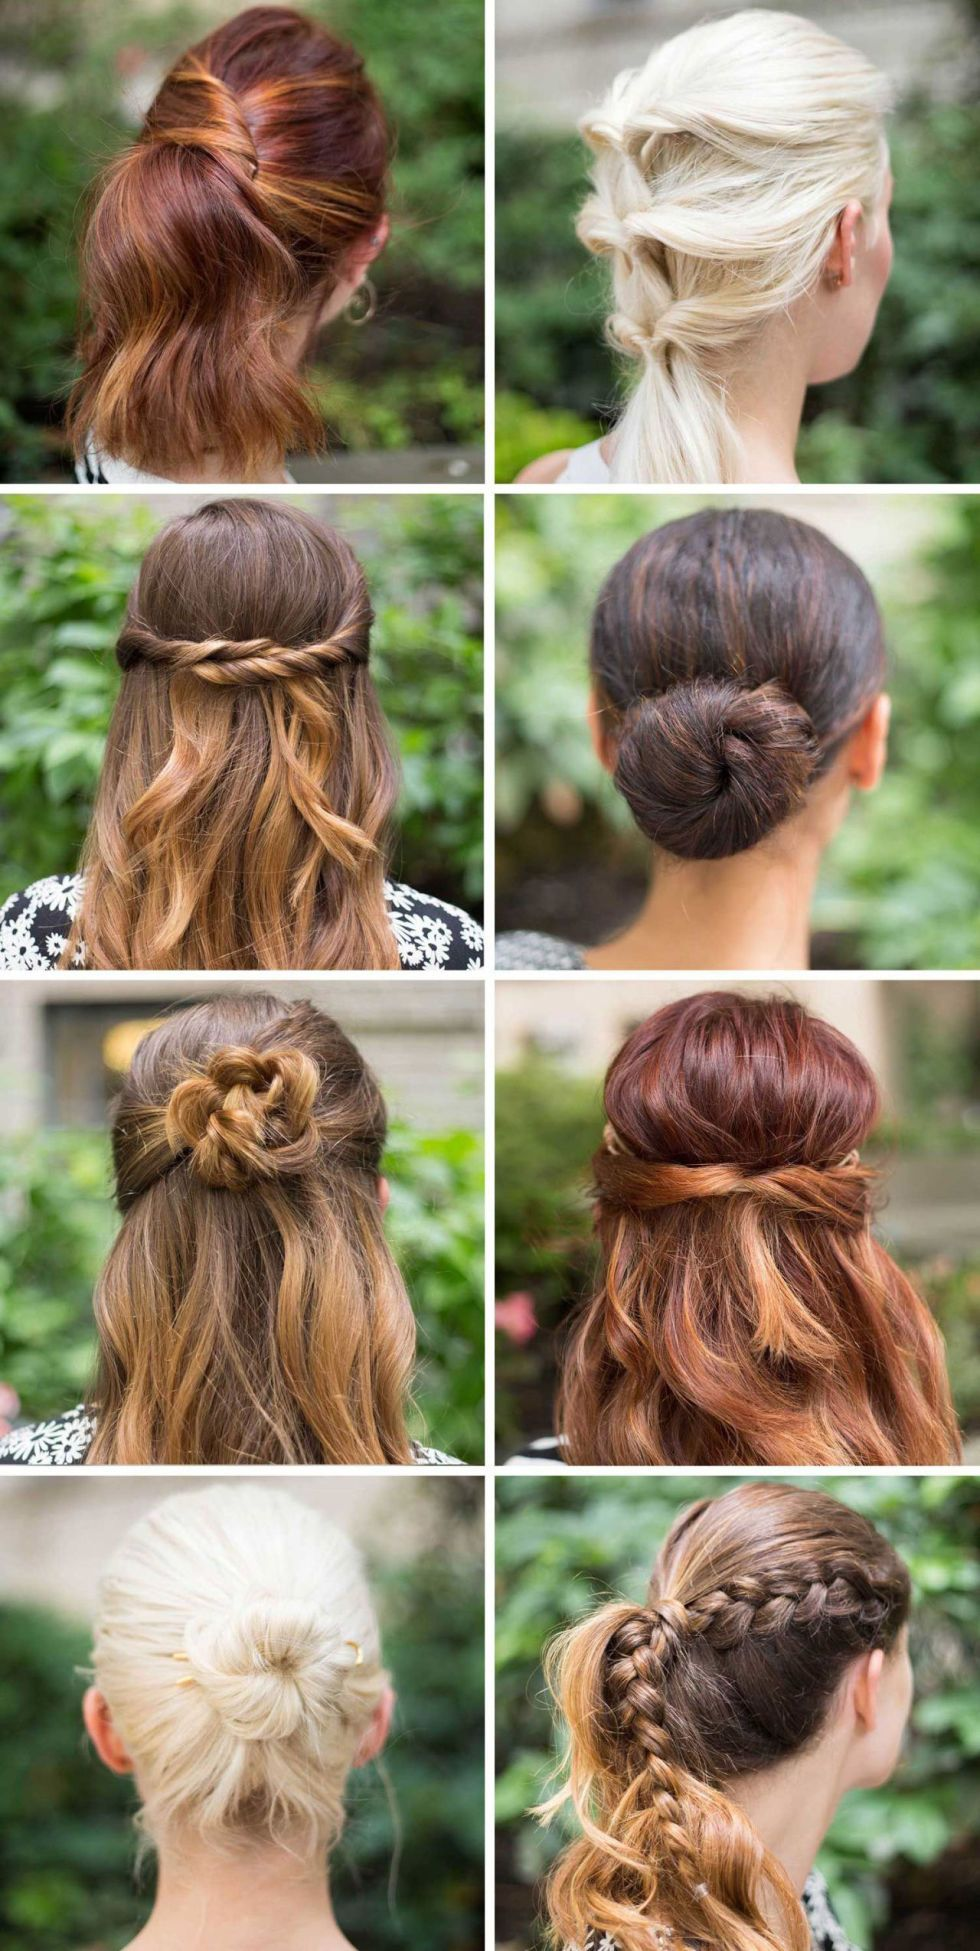 Acconciature capelli lunghi mes coiffures pinterest